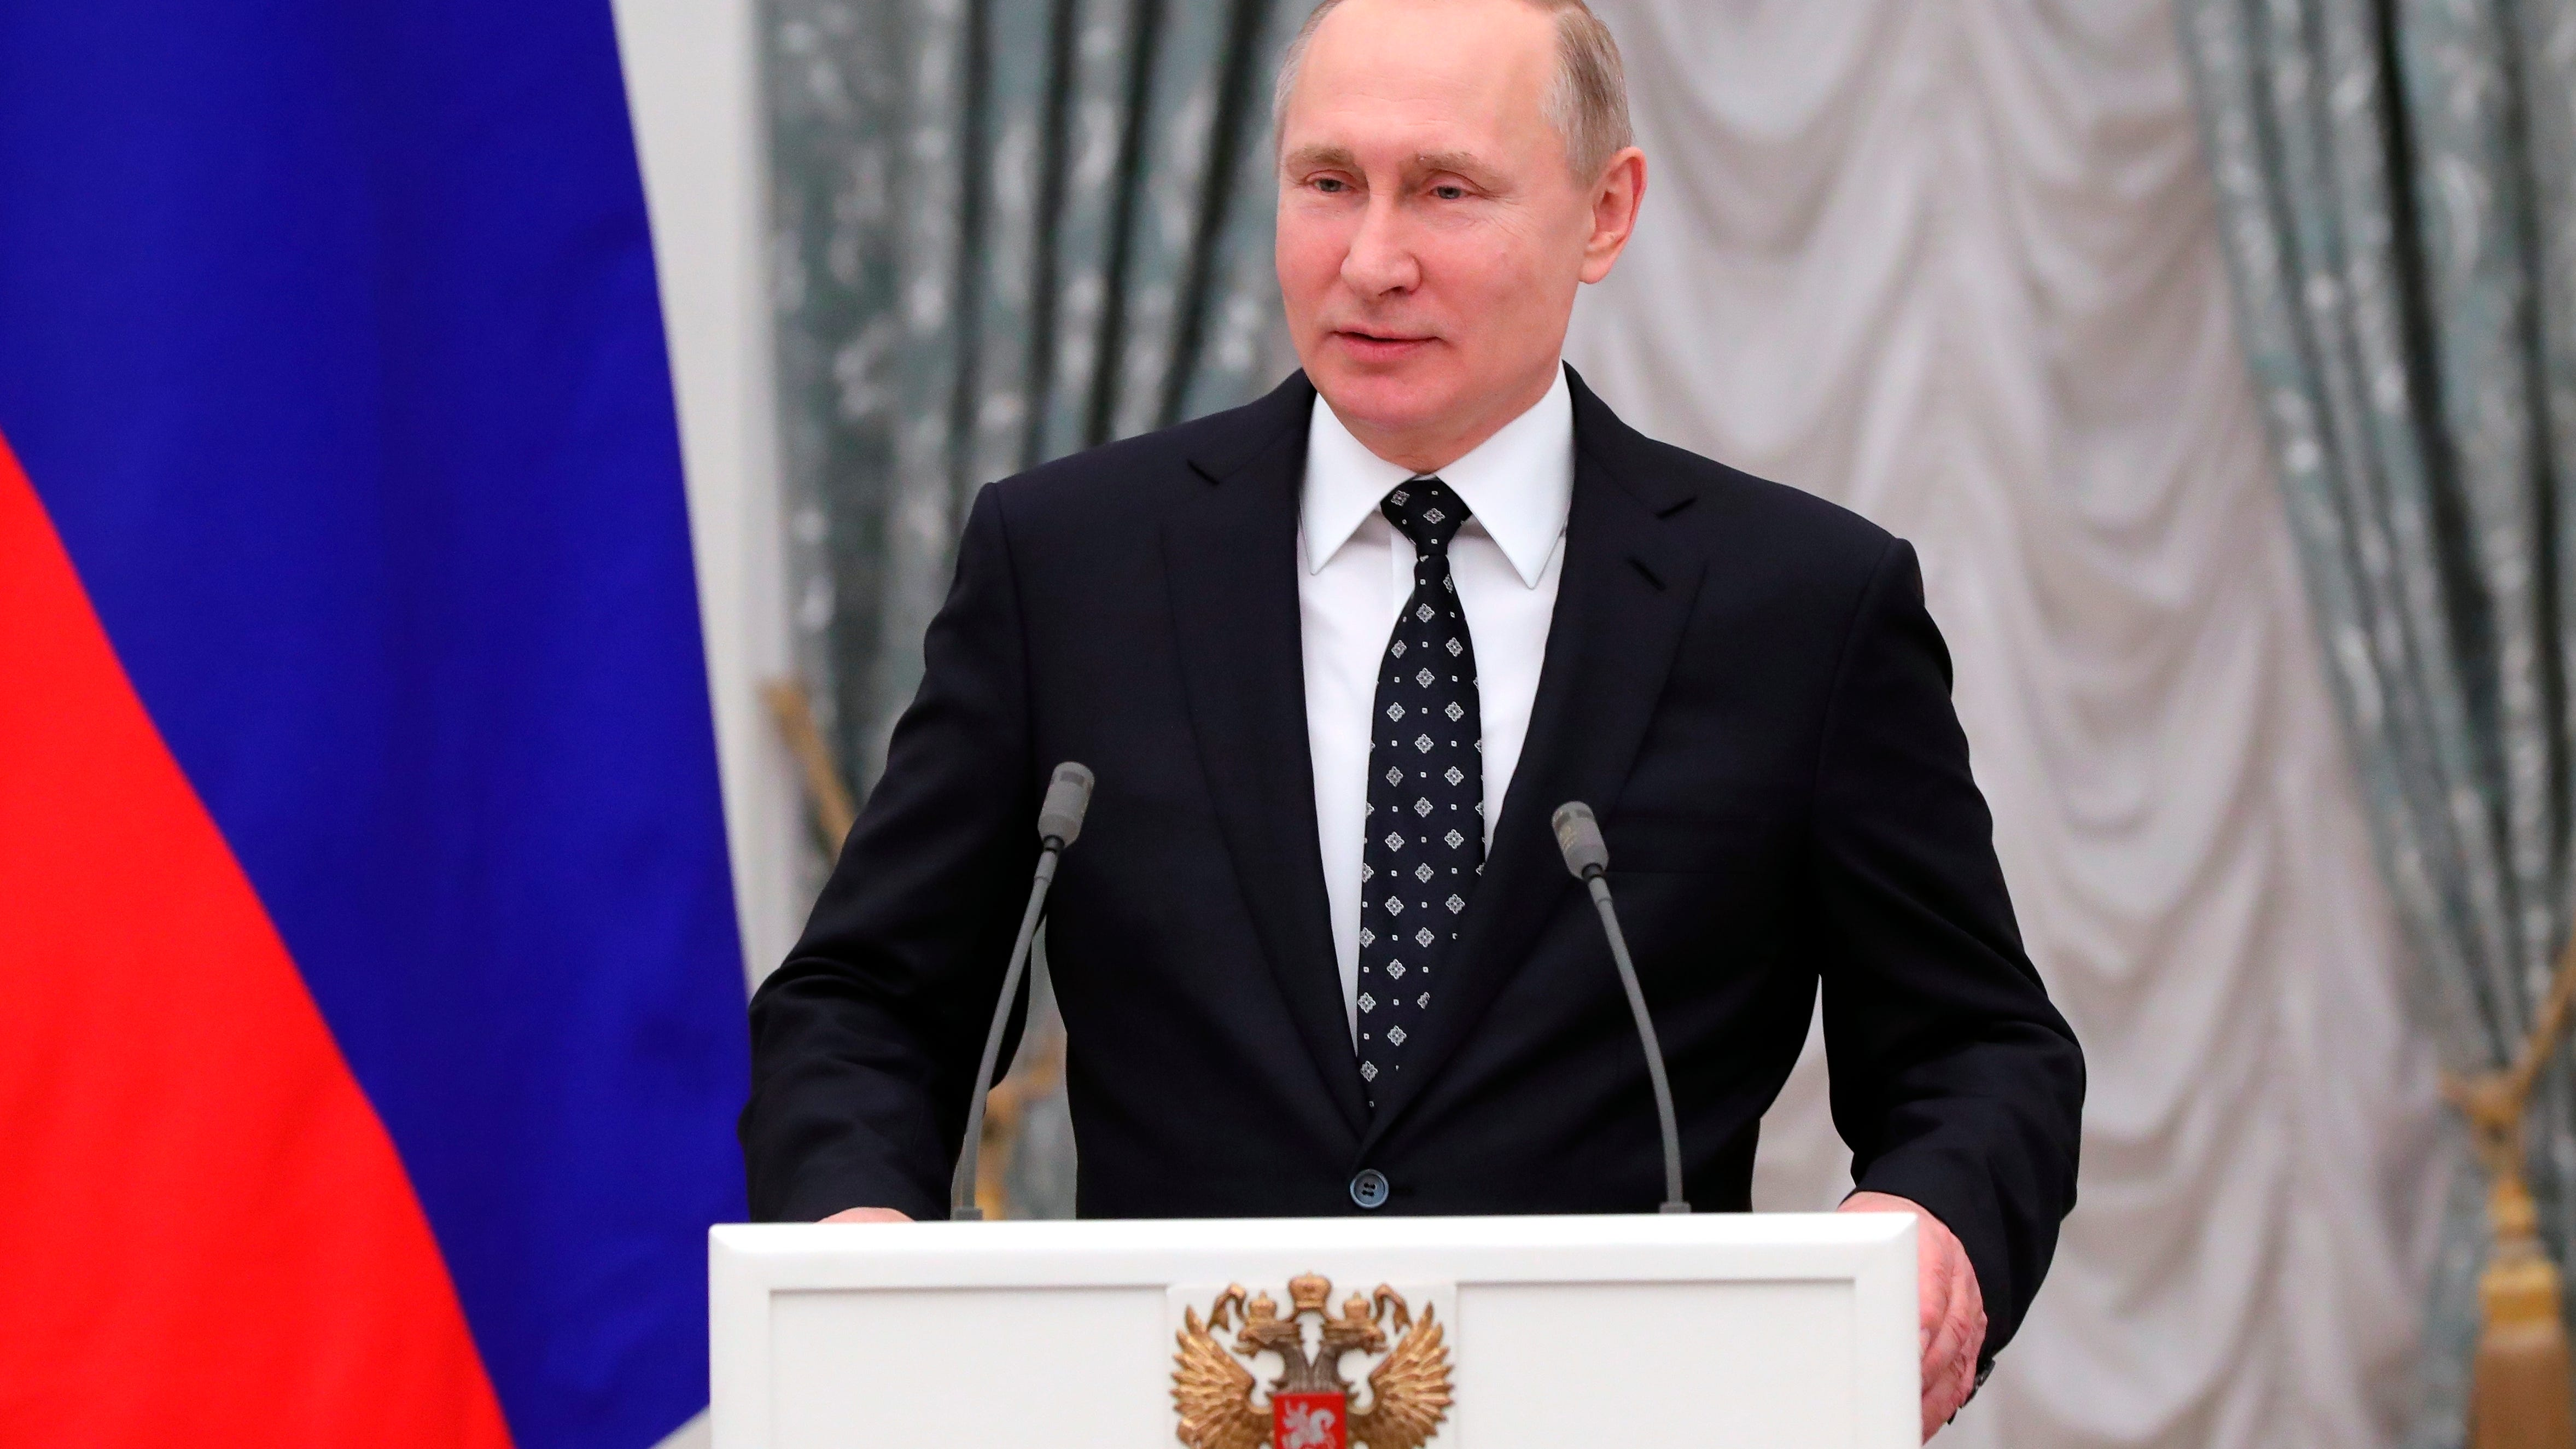 Vladimir Putin Sworn In For A Fourth Term As Russian President